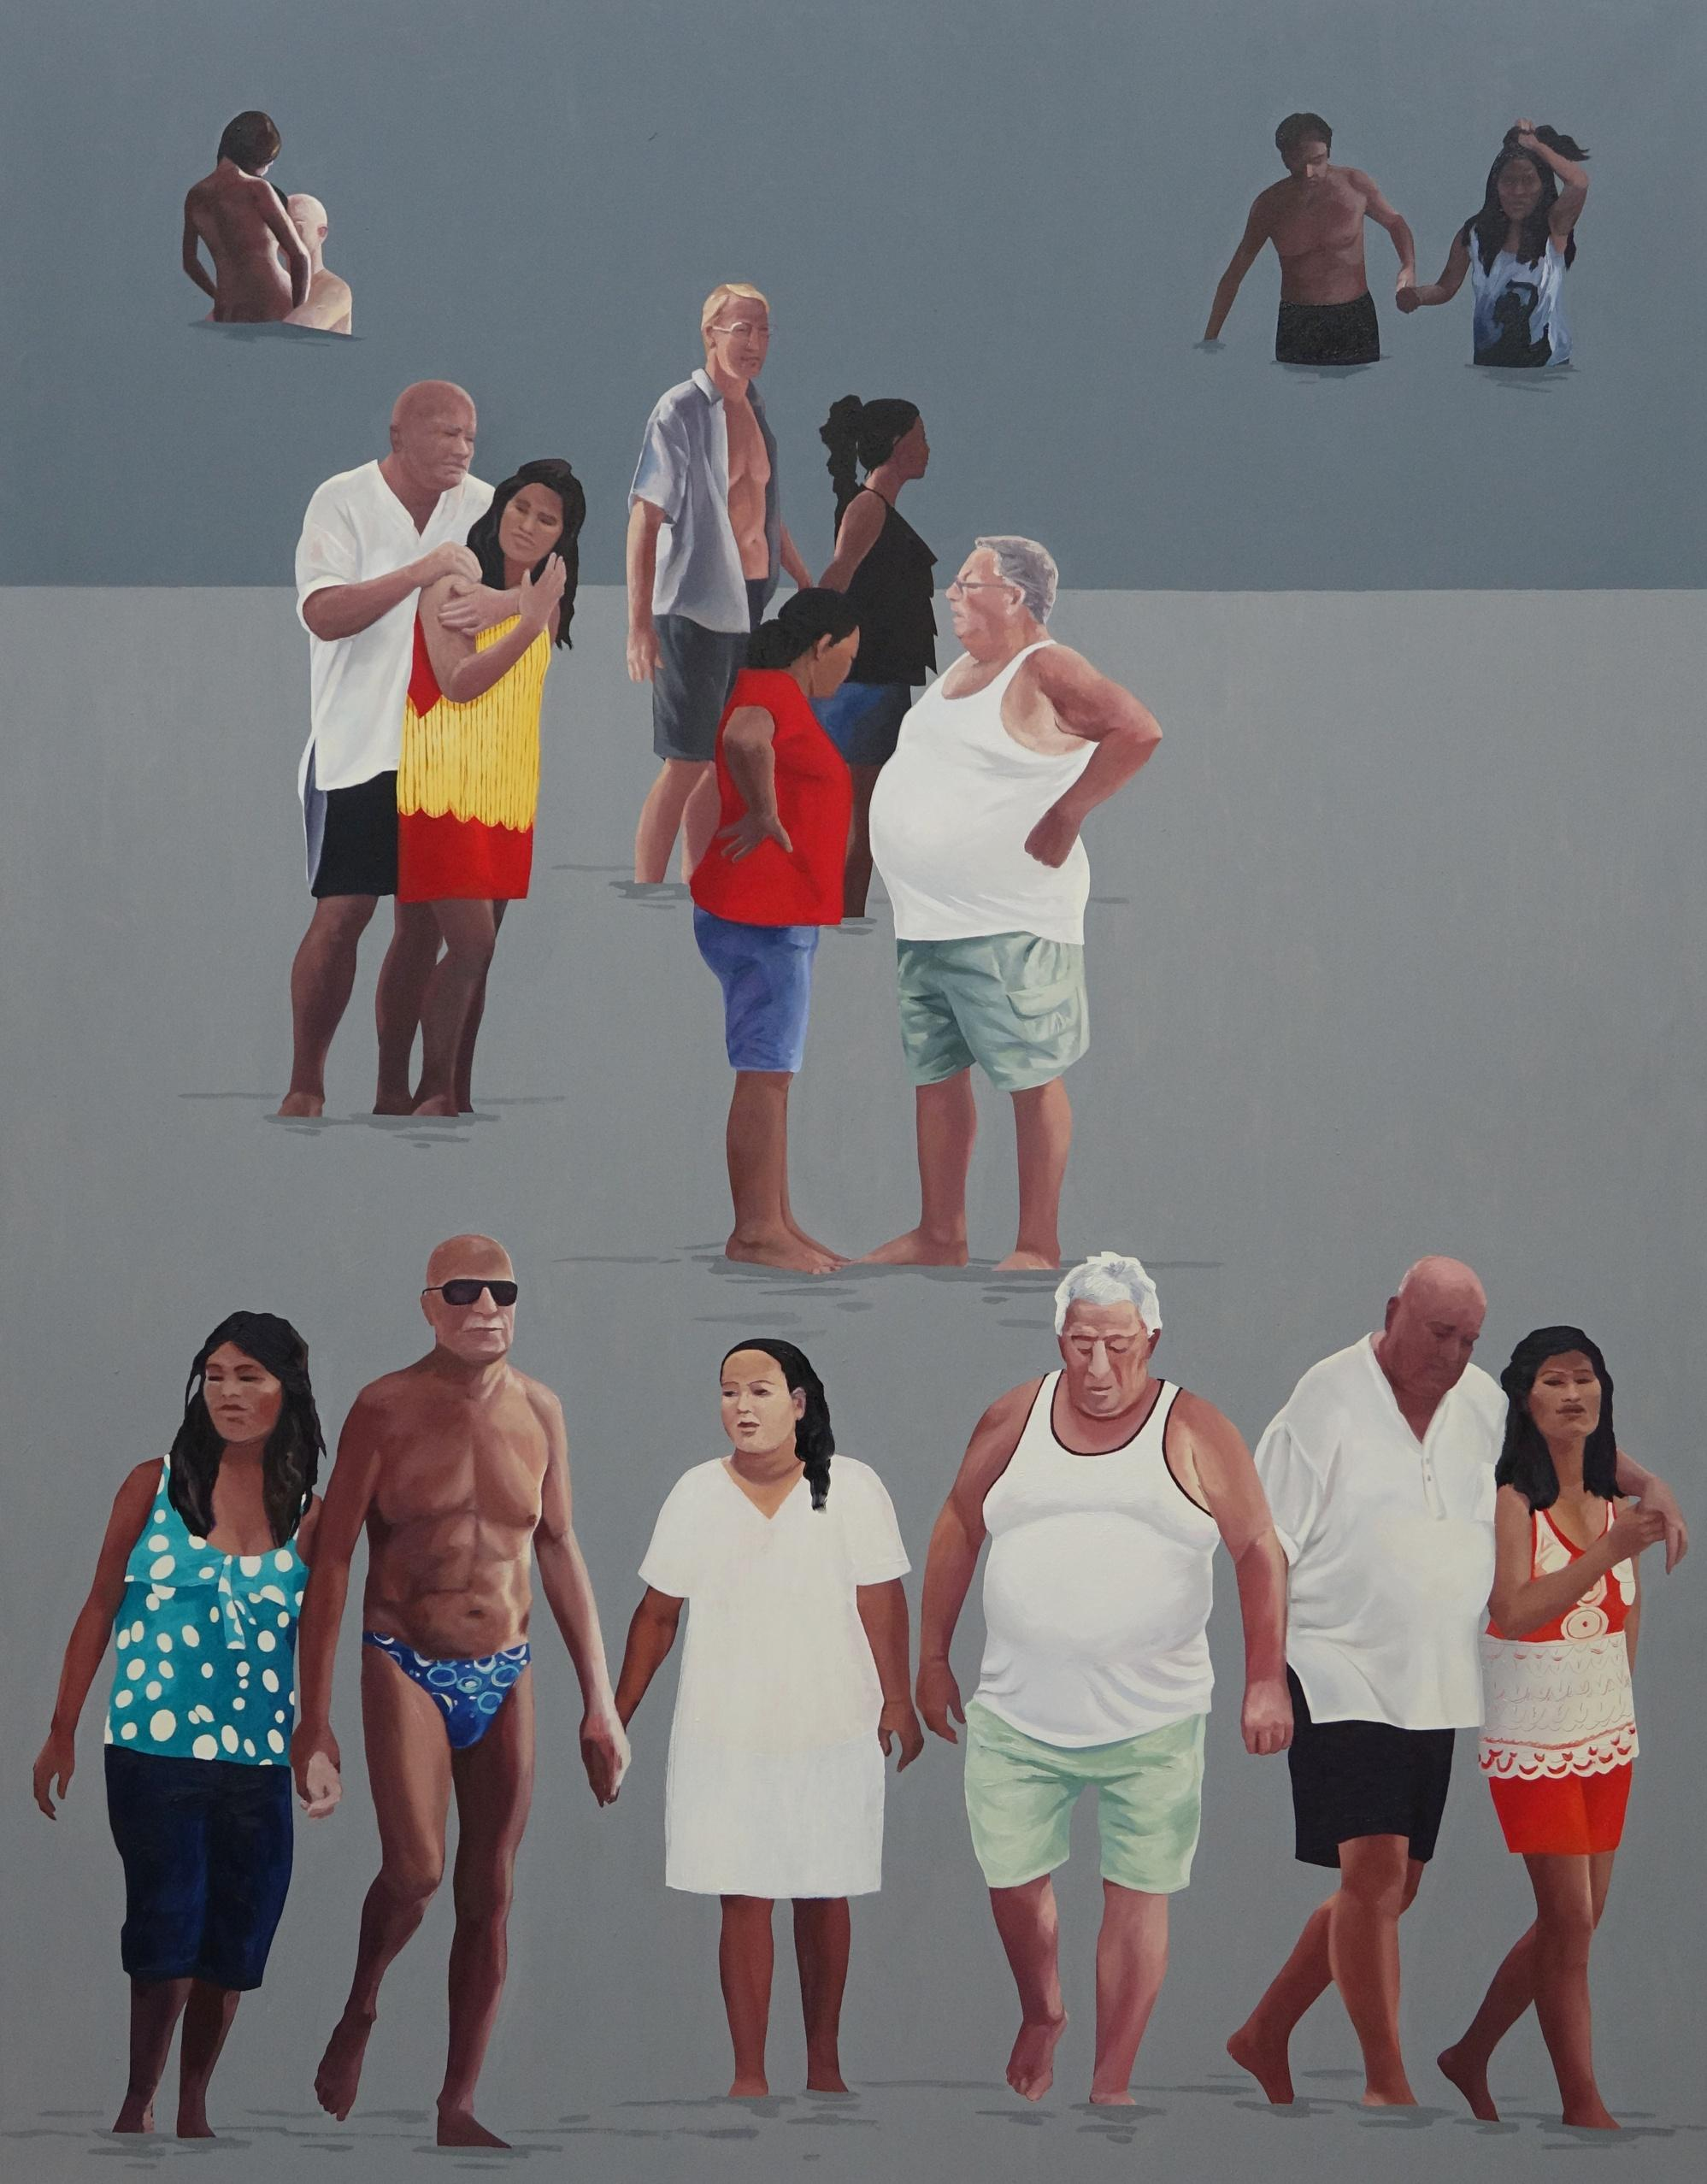 Tourism - Large Format Painting, Modern Figurative Oil Painting, Beach View